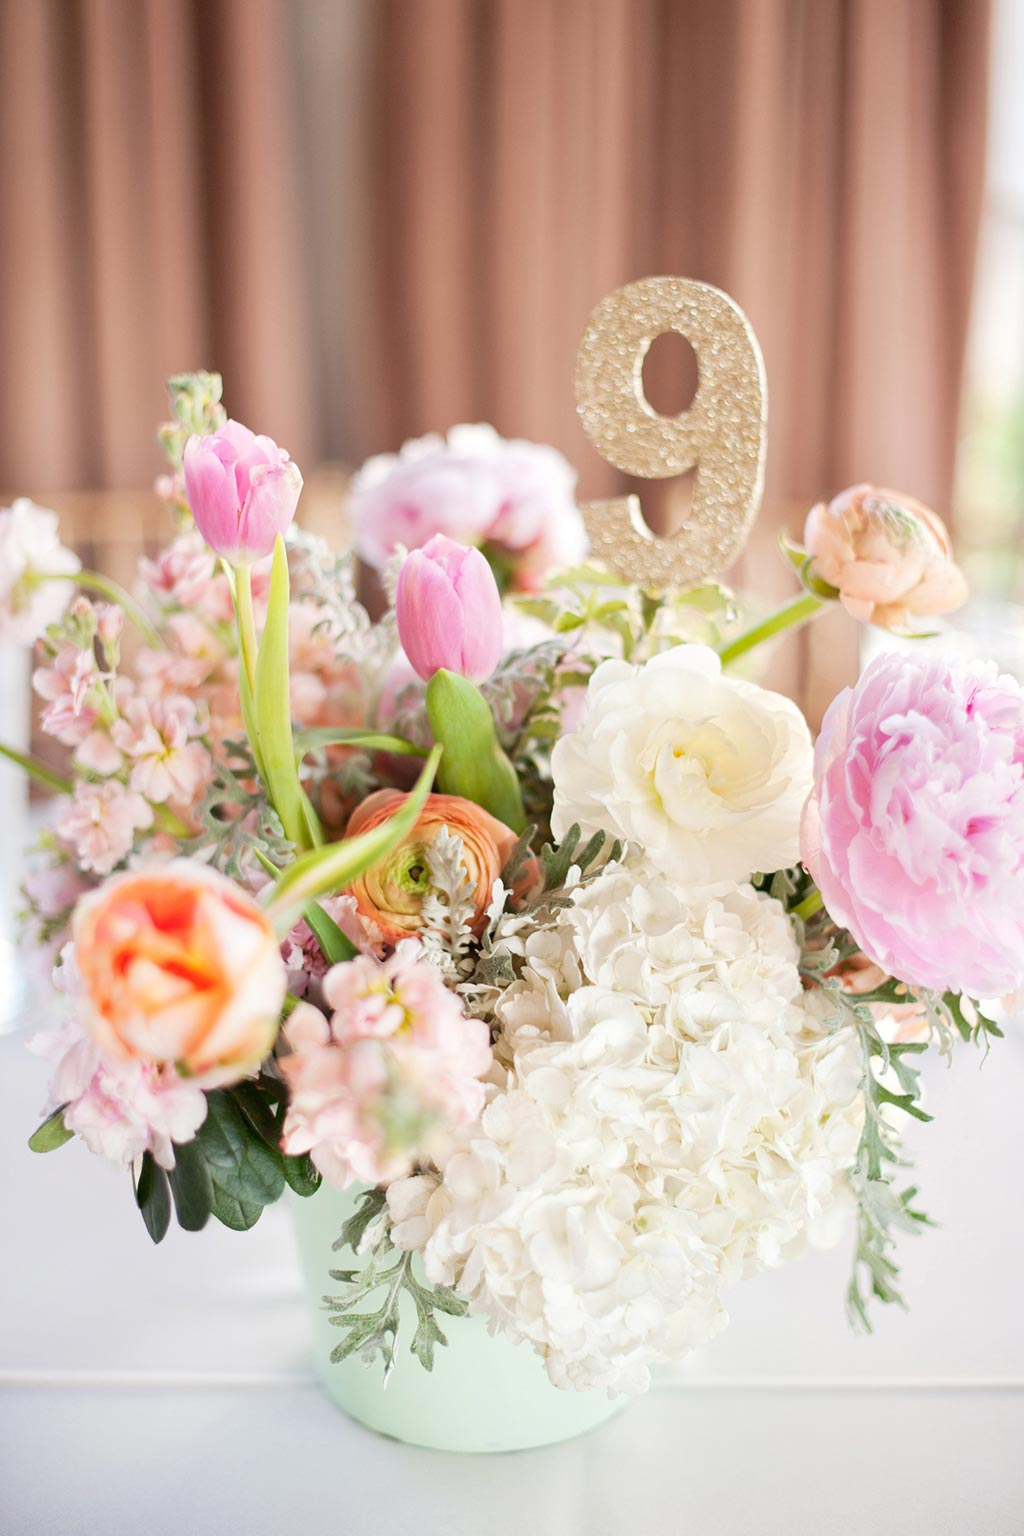 Mint and Gold Vase with Pink and Peach Floral Wedding Centerpiece